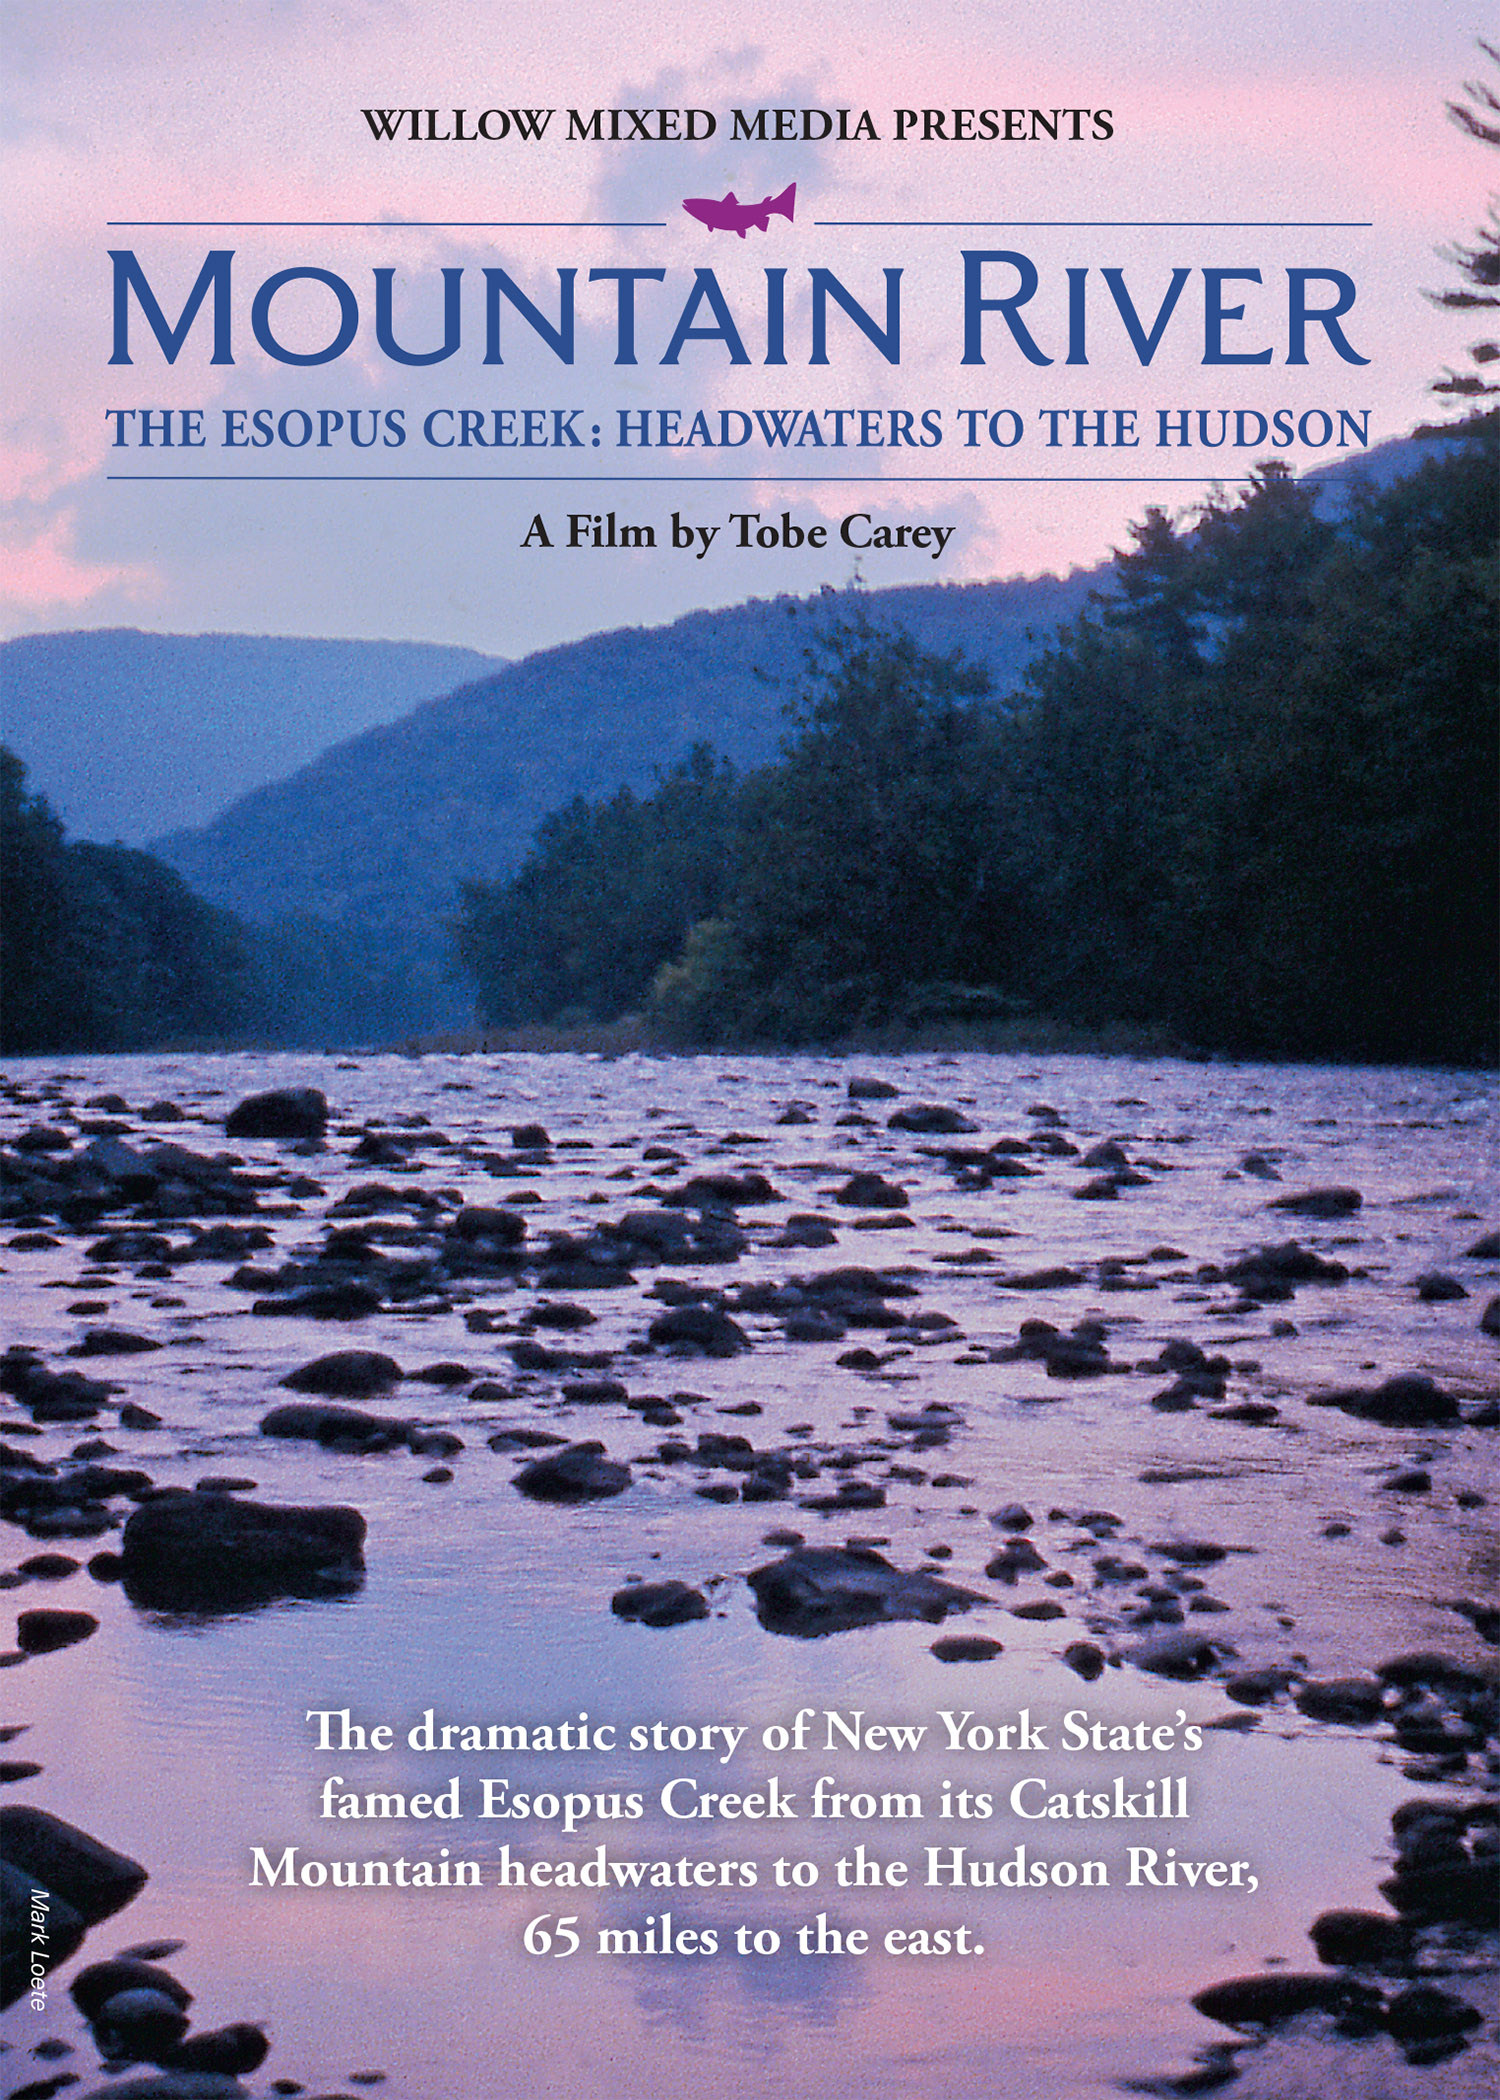 MOUNTAIN RIVER--The Esopus Creek: Headwaters to the Hudson